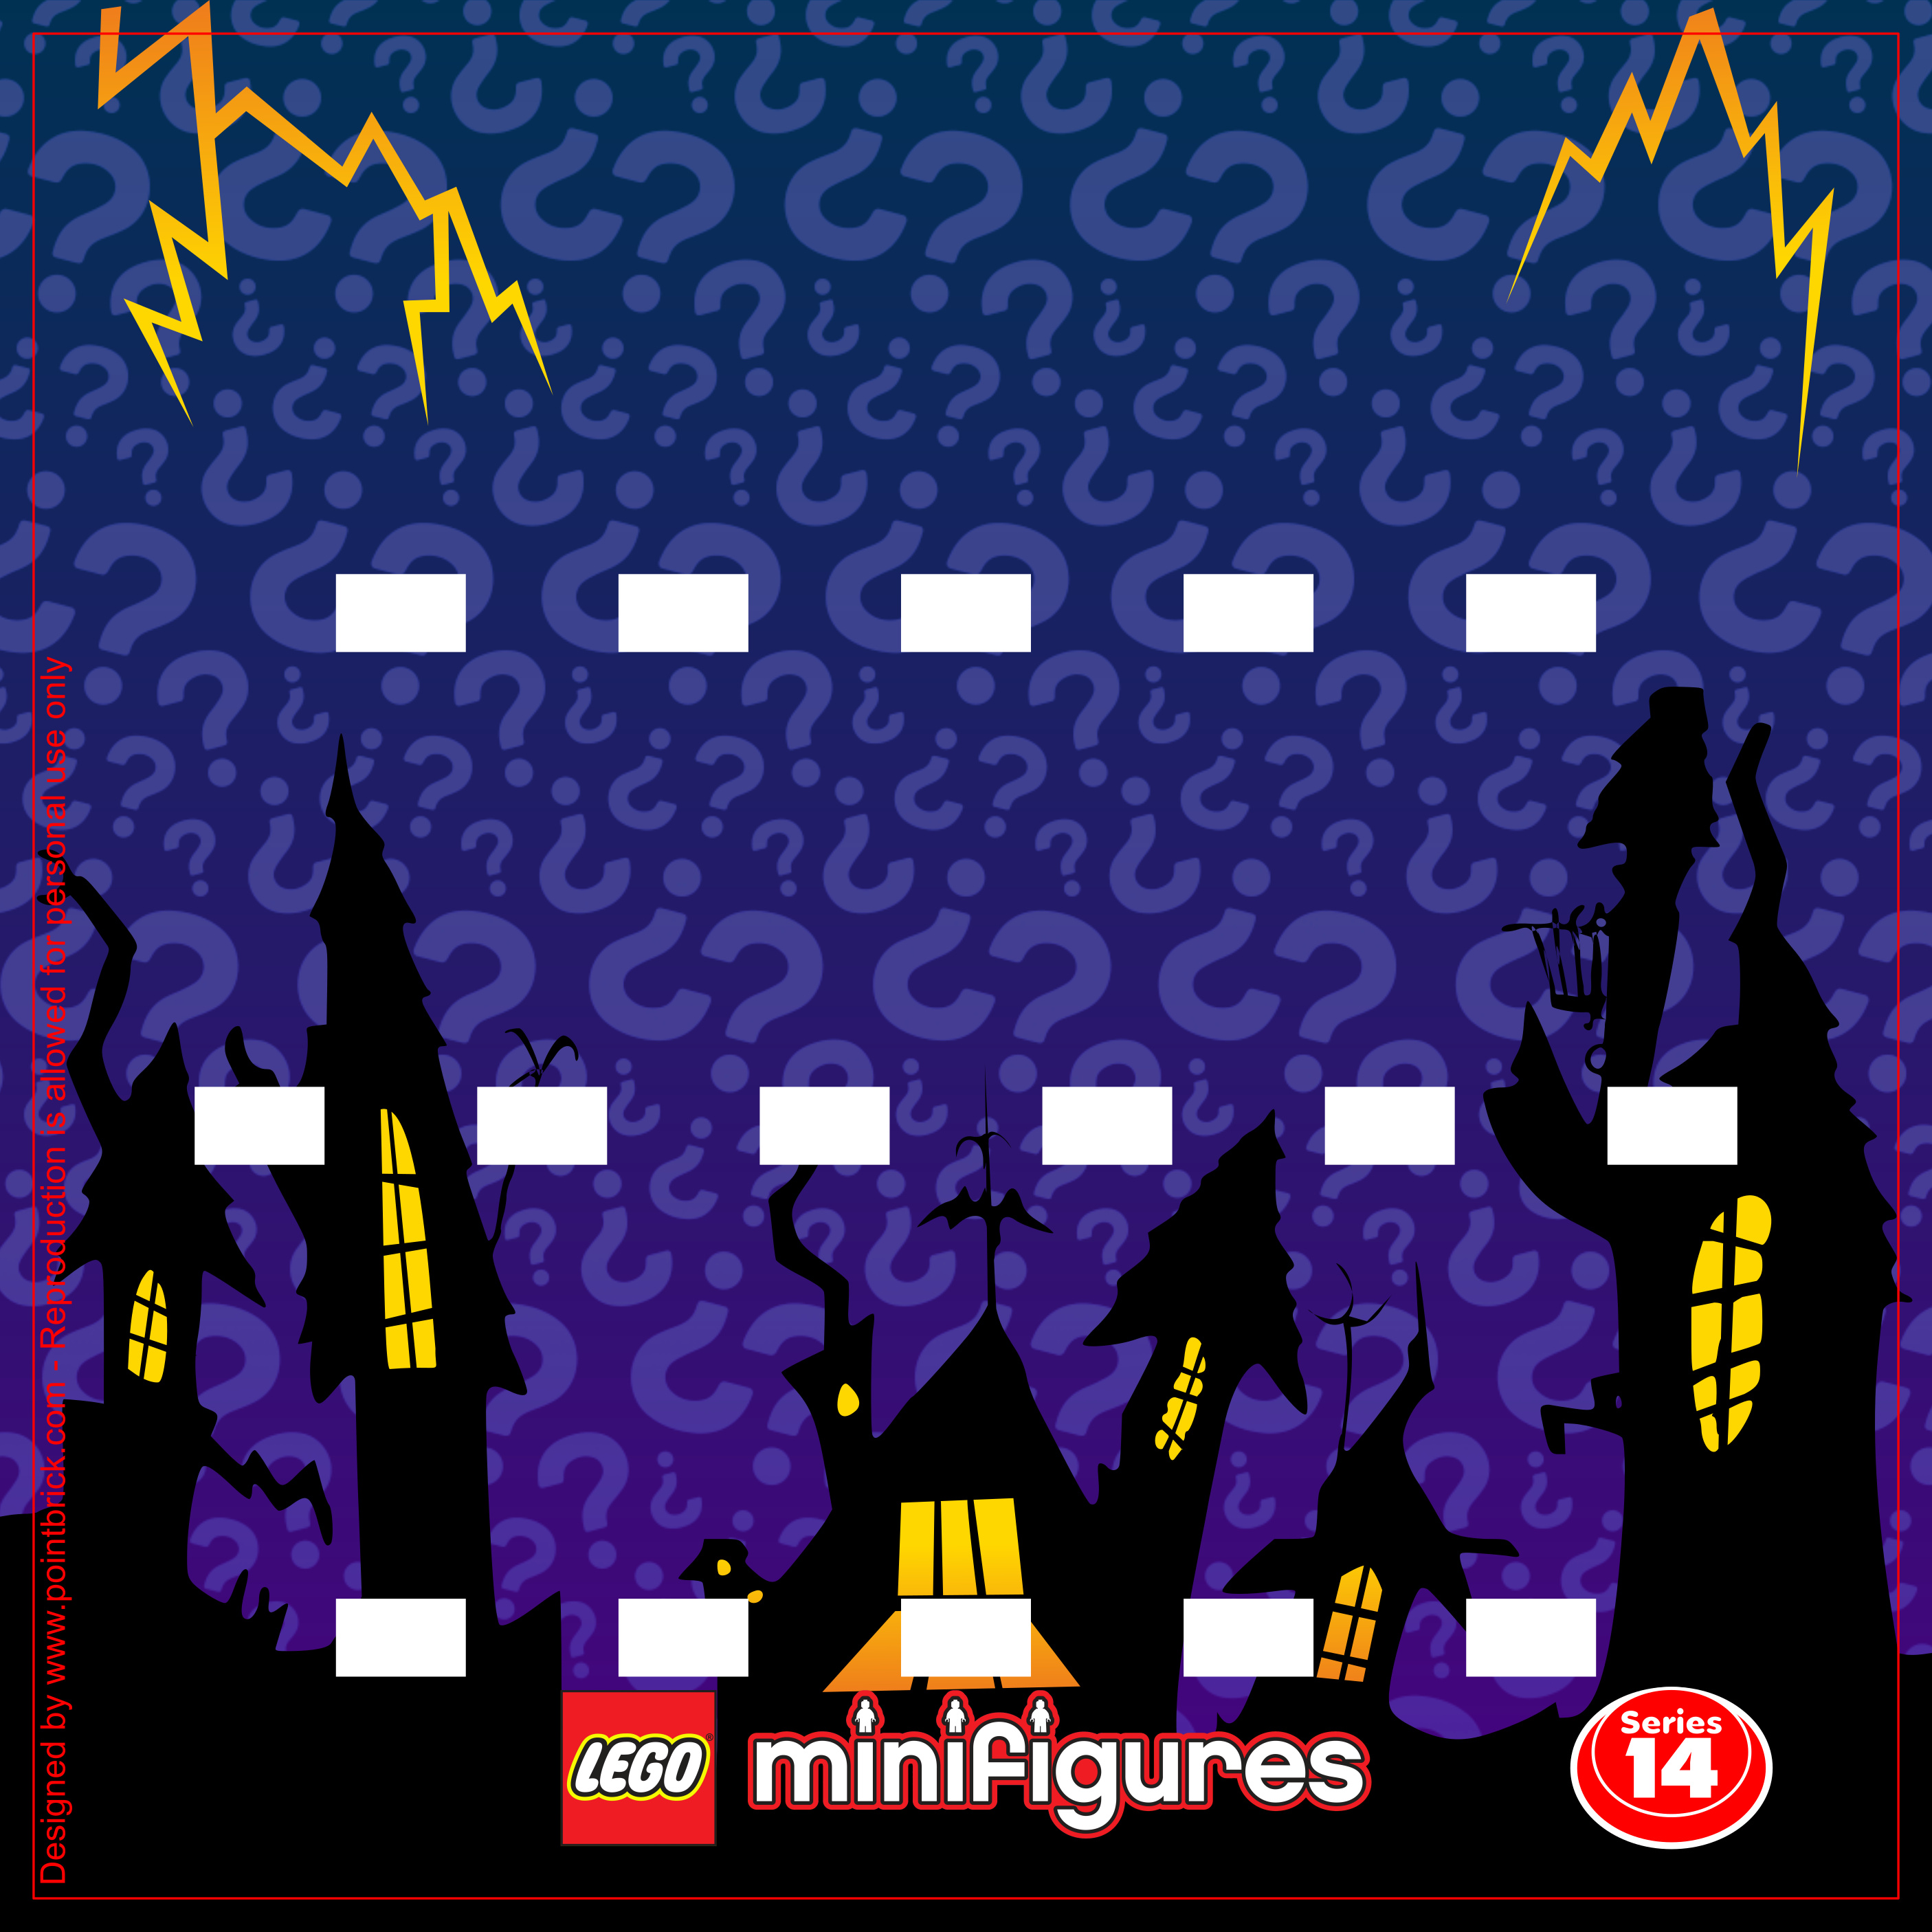 IKEA Ribba Hack - LEGO Minifigures Display Frame Background - 71010 Serie 14 Halloween Monsters - Clicca sull'immagine per scaricarla gratuitamente!